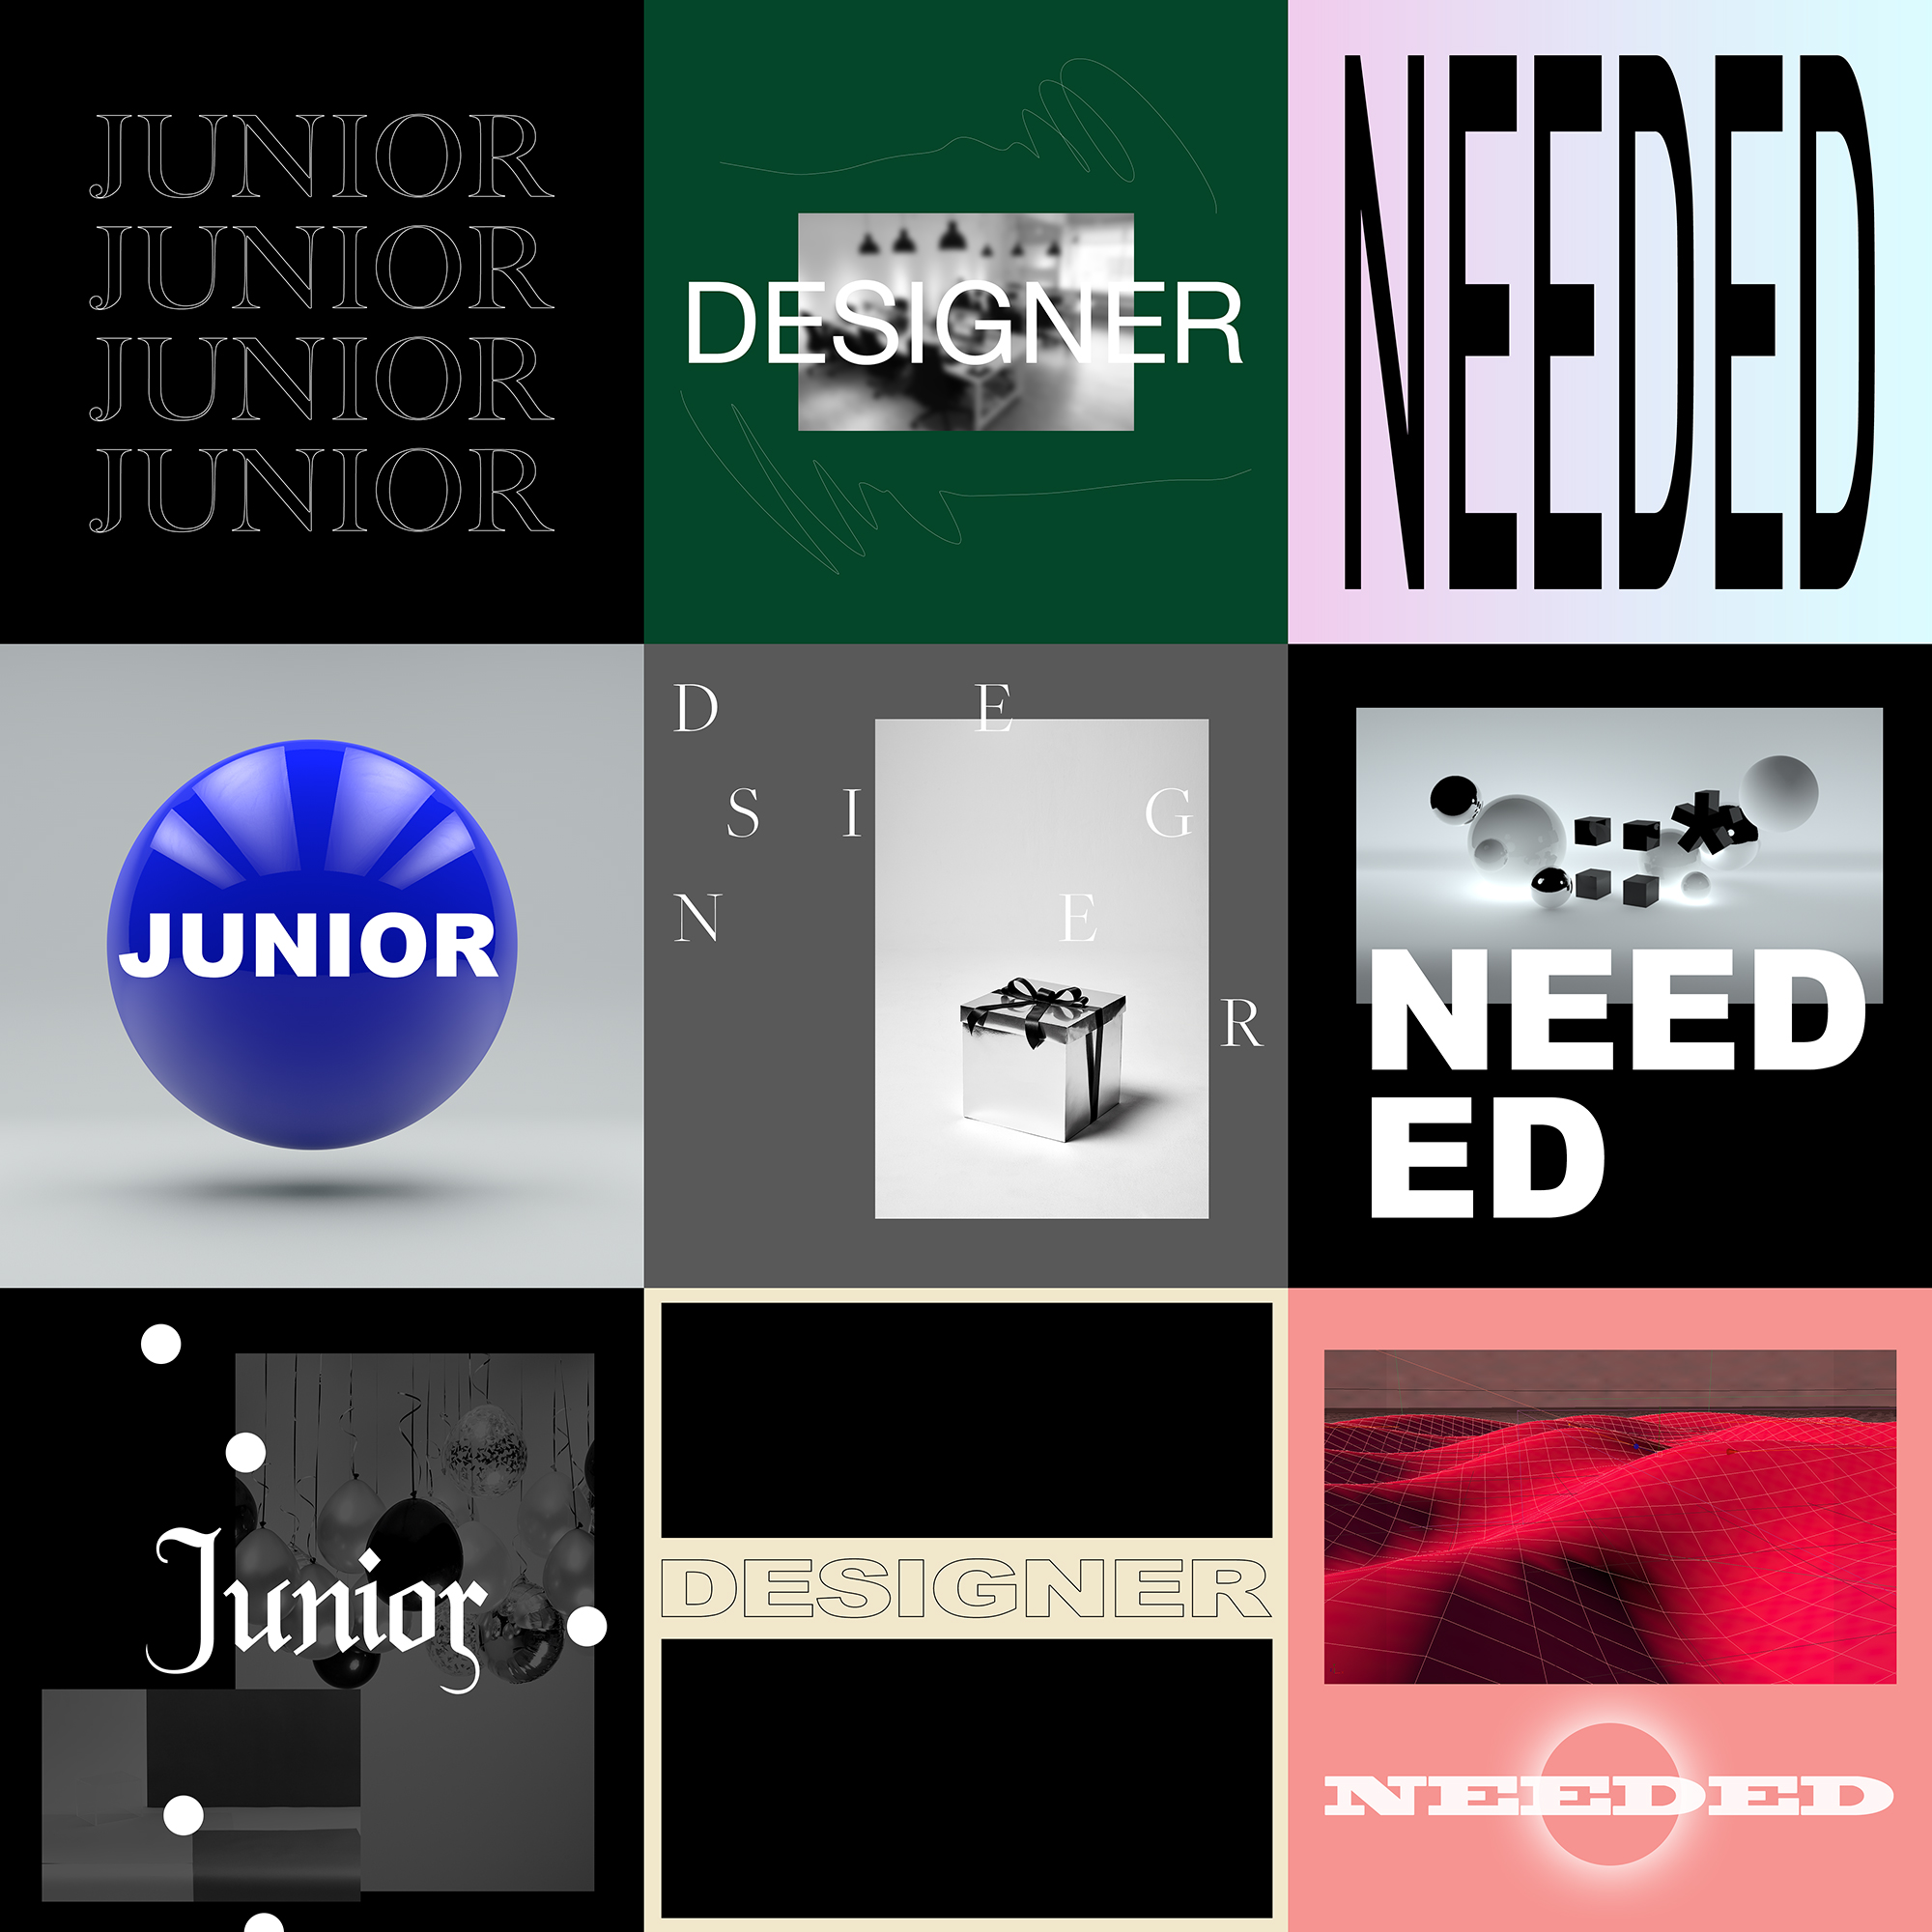 Junior designer required